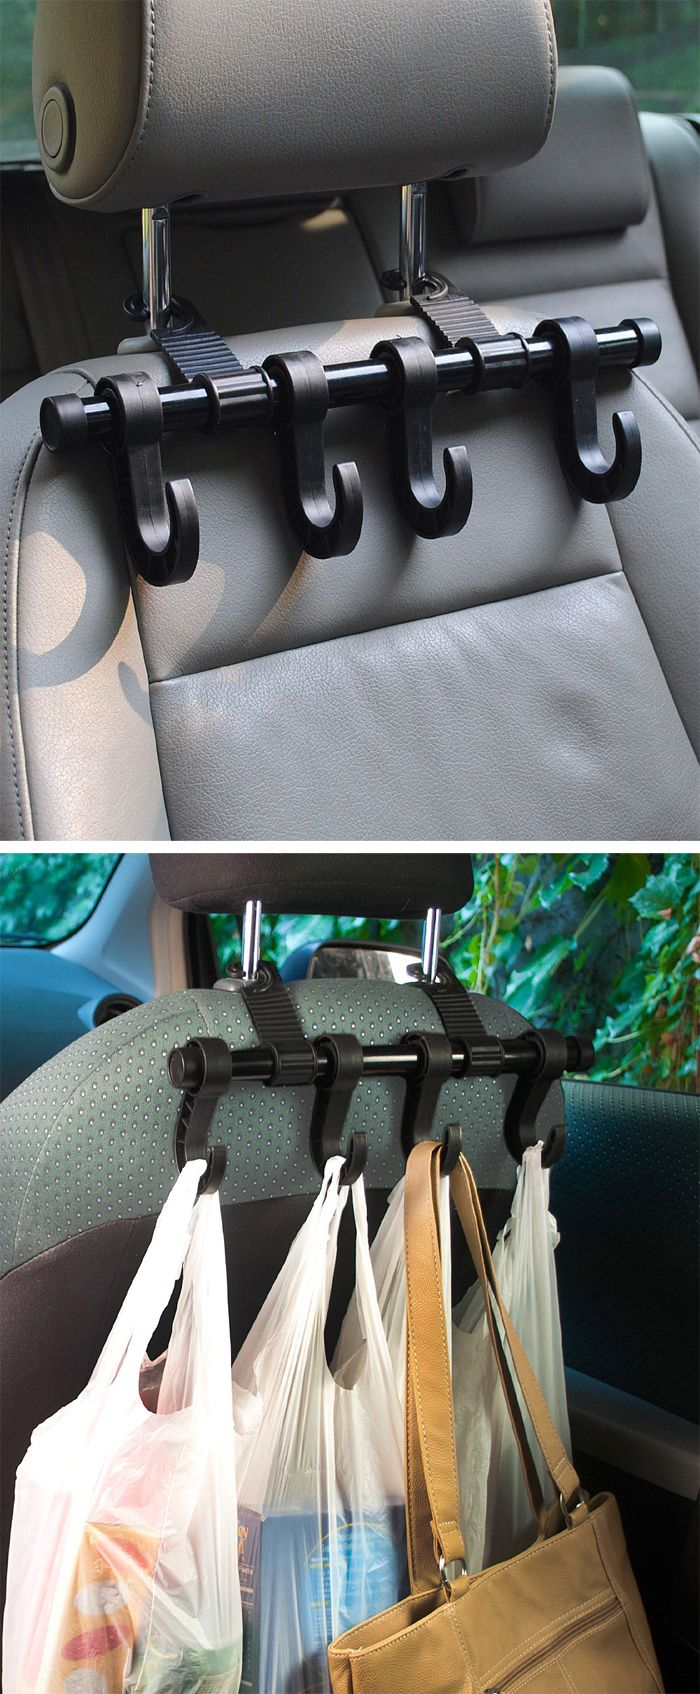 Car headrest multi hanger // brilliant idea, holds grocery bags, handbag, dry cleaning and more! #product_design #organization